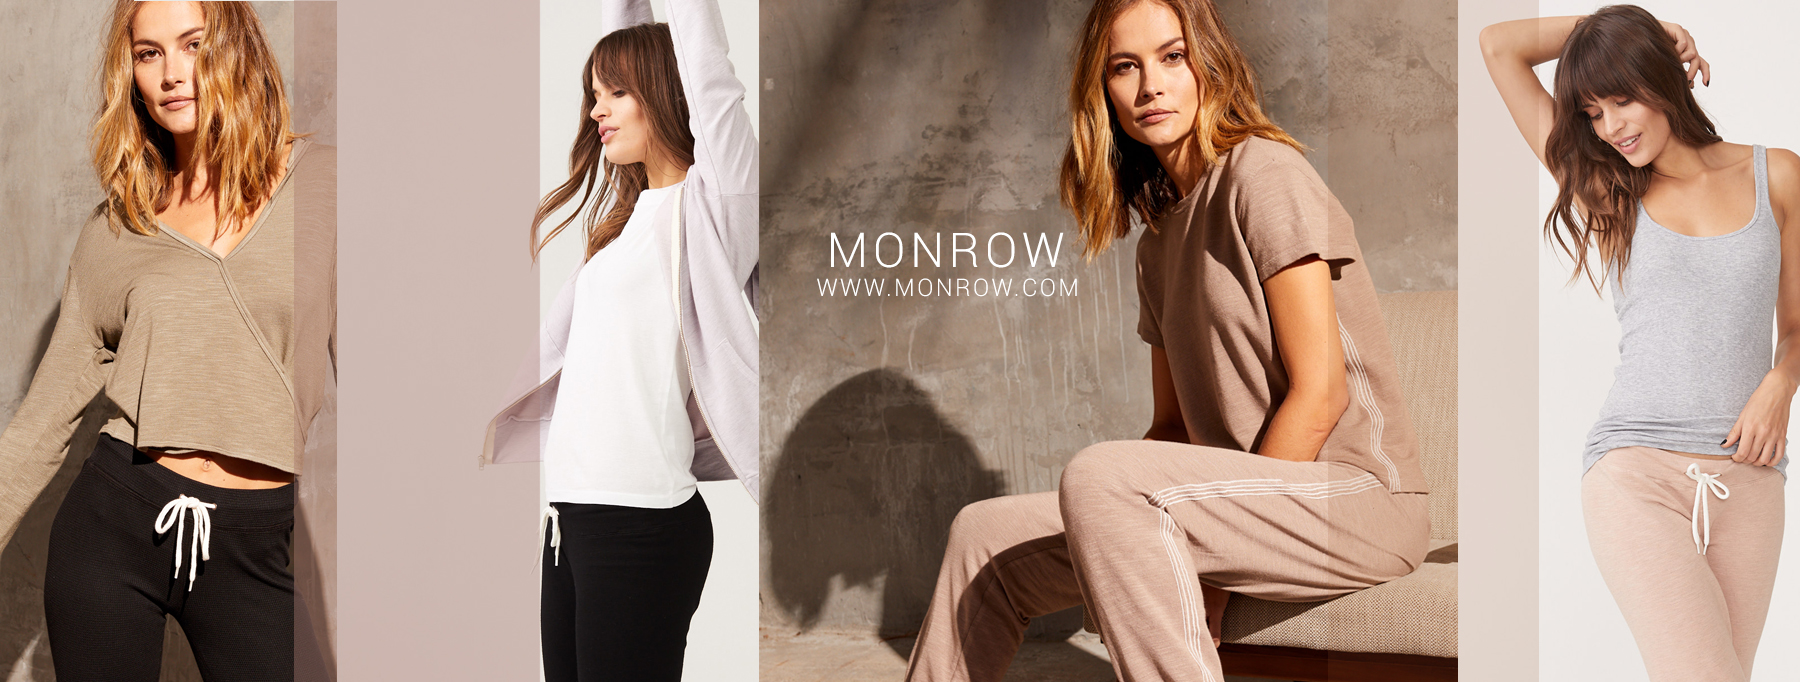 TRYST_ourcollection_Monrow copy.jpg